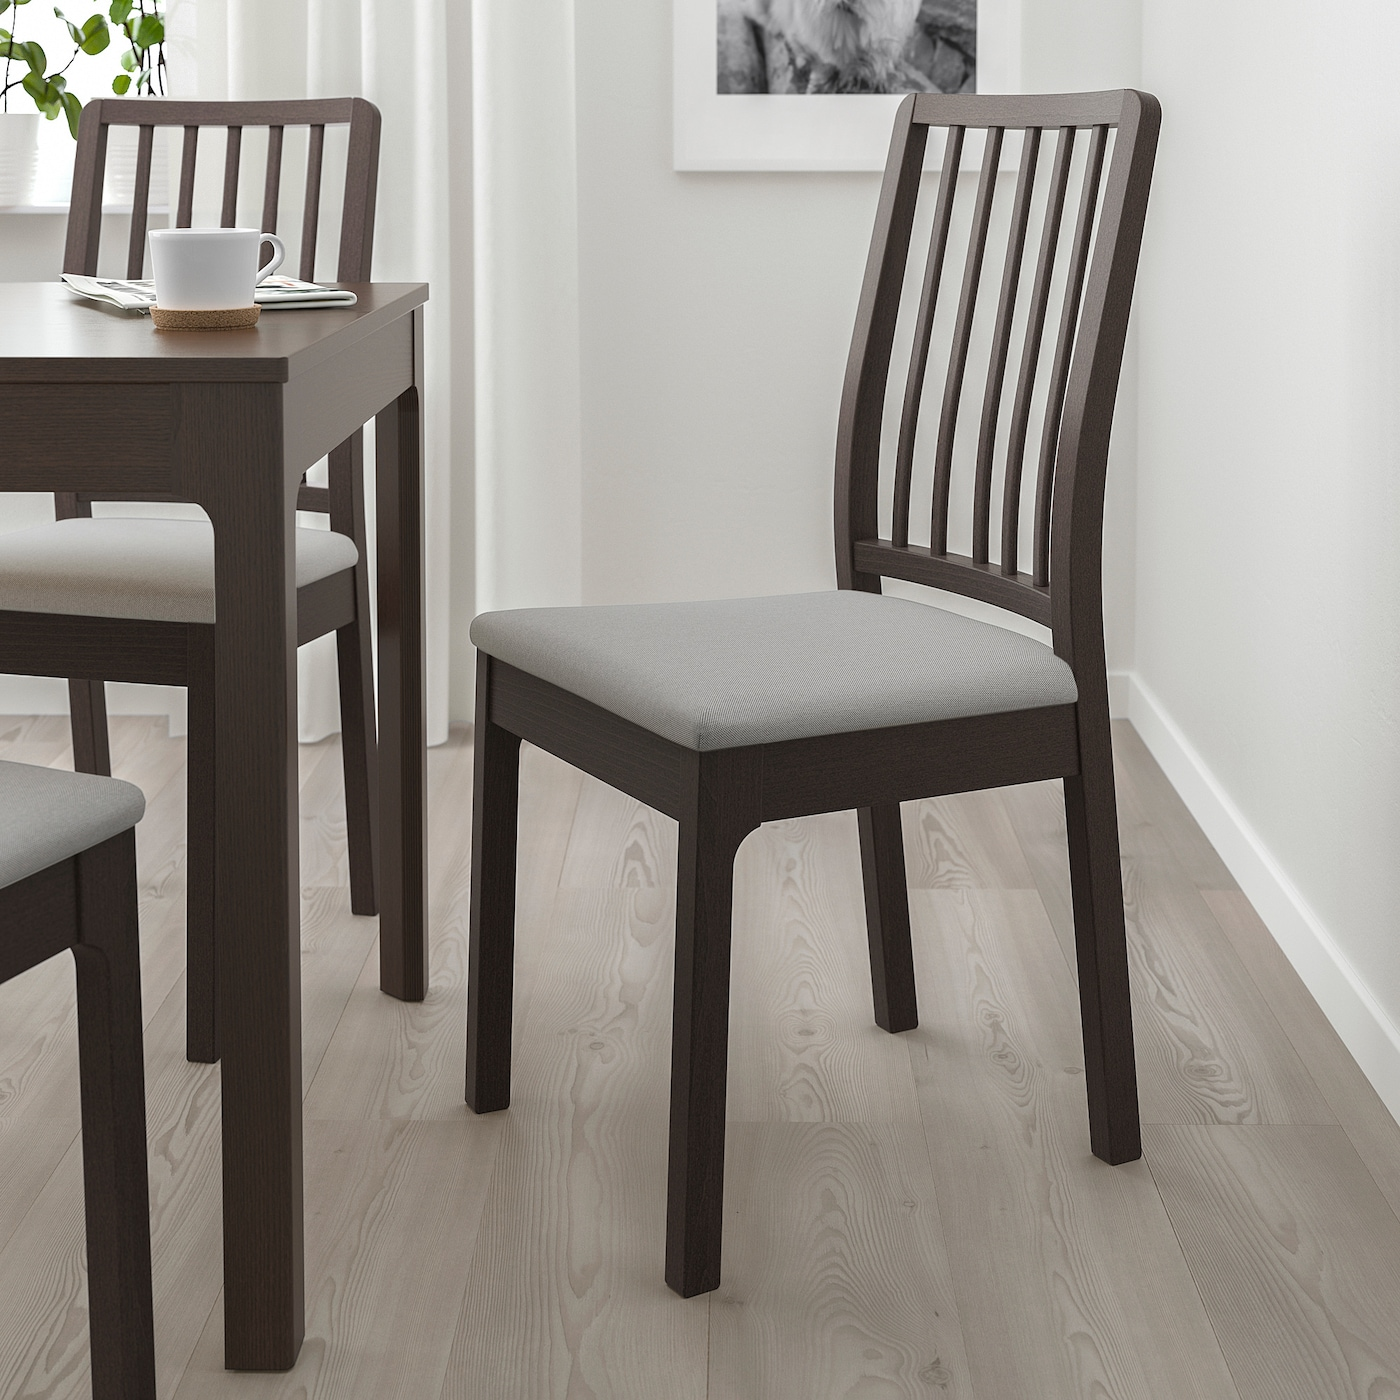 New Ikea comfortable of long dinners EKEDALEN chair multiple colors available